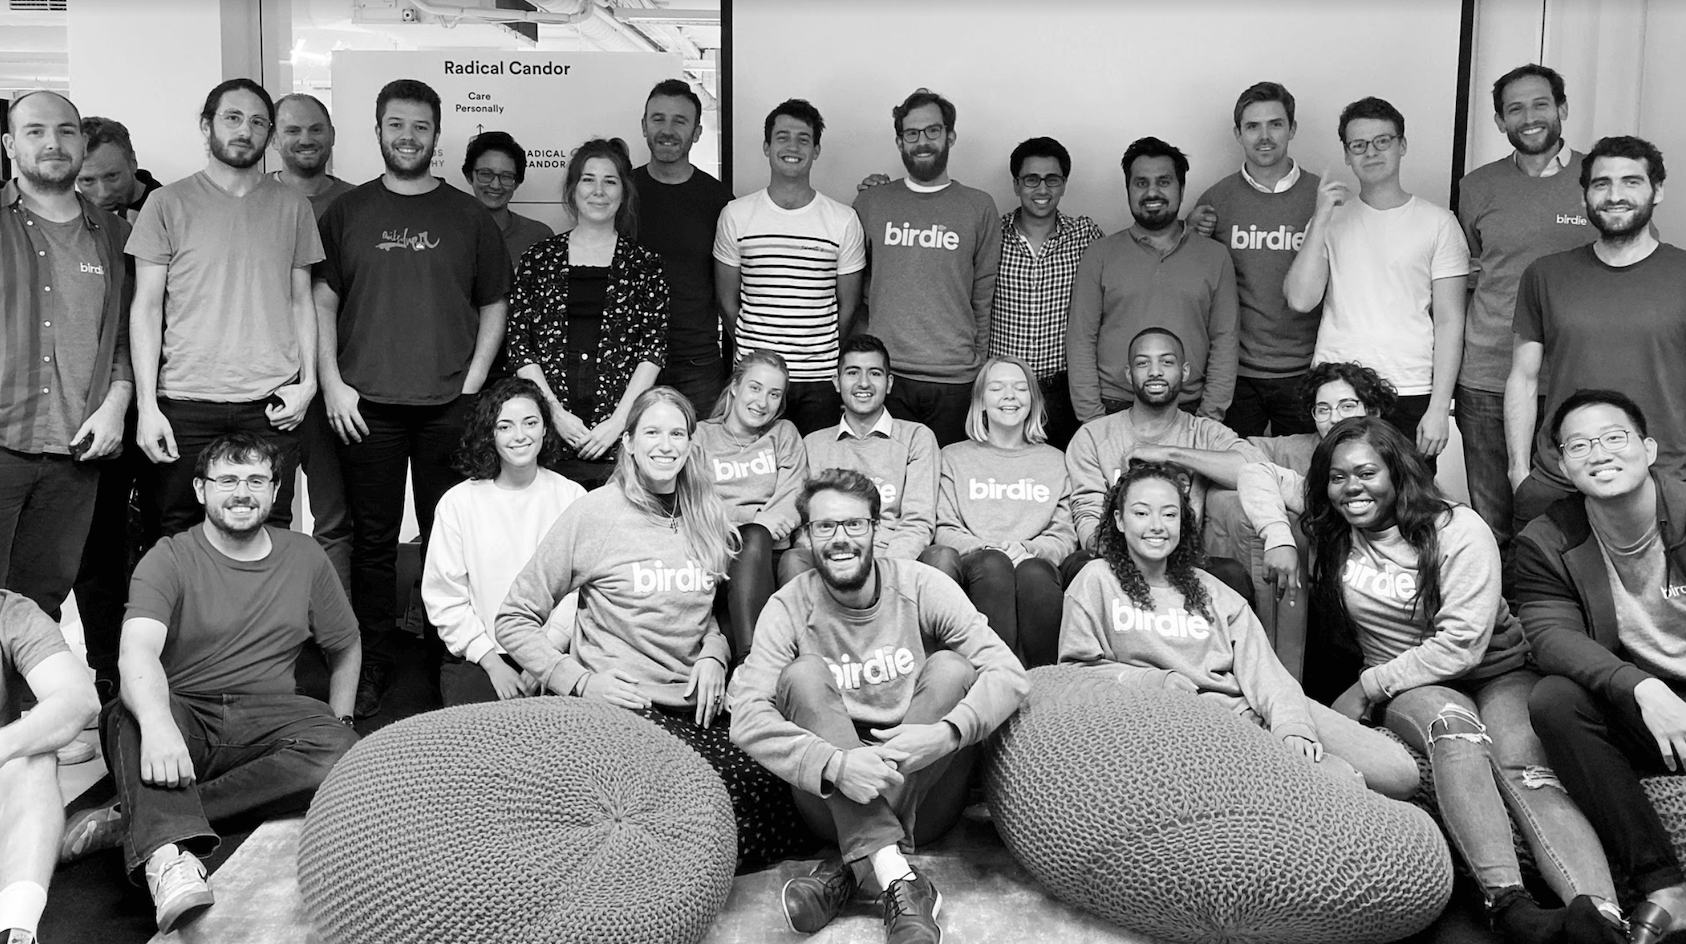 Team of people stand in office, in front of radical candor poster, wearing grey birdie jumpers. There are beanbags in the forefront